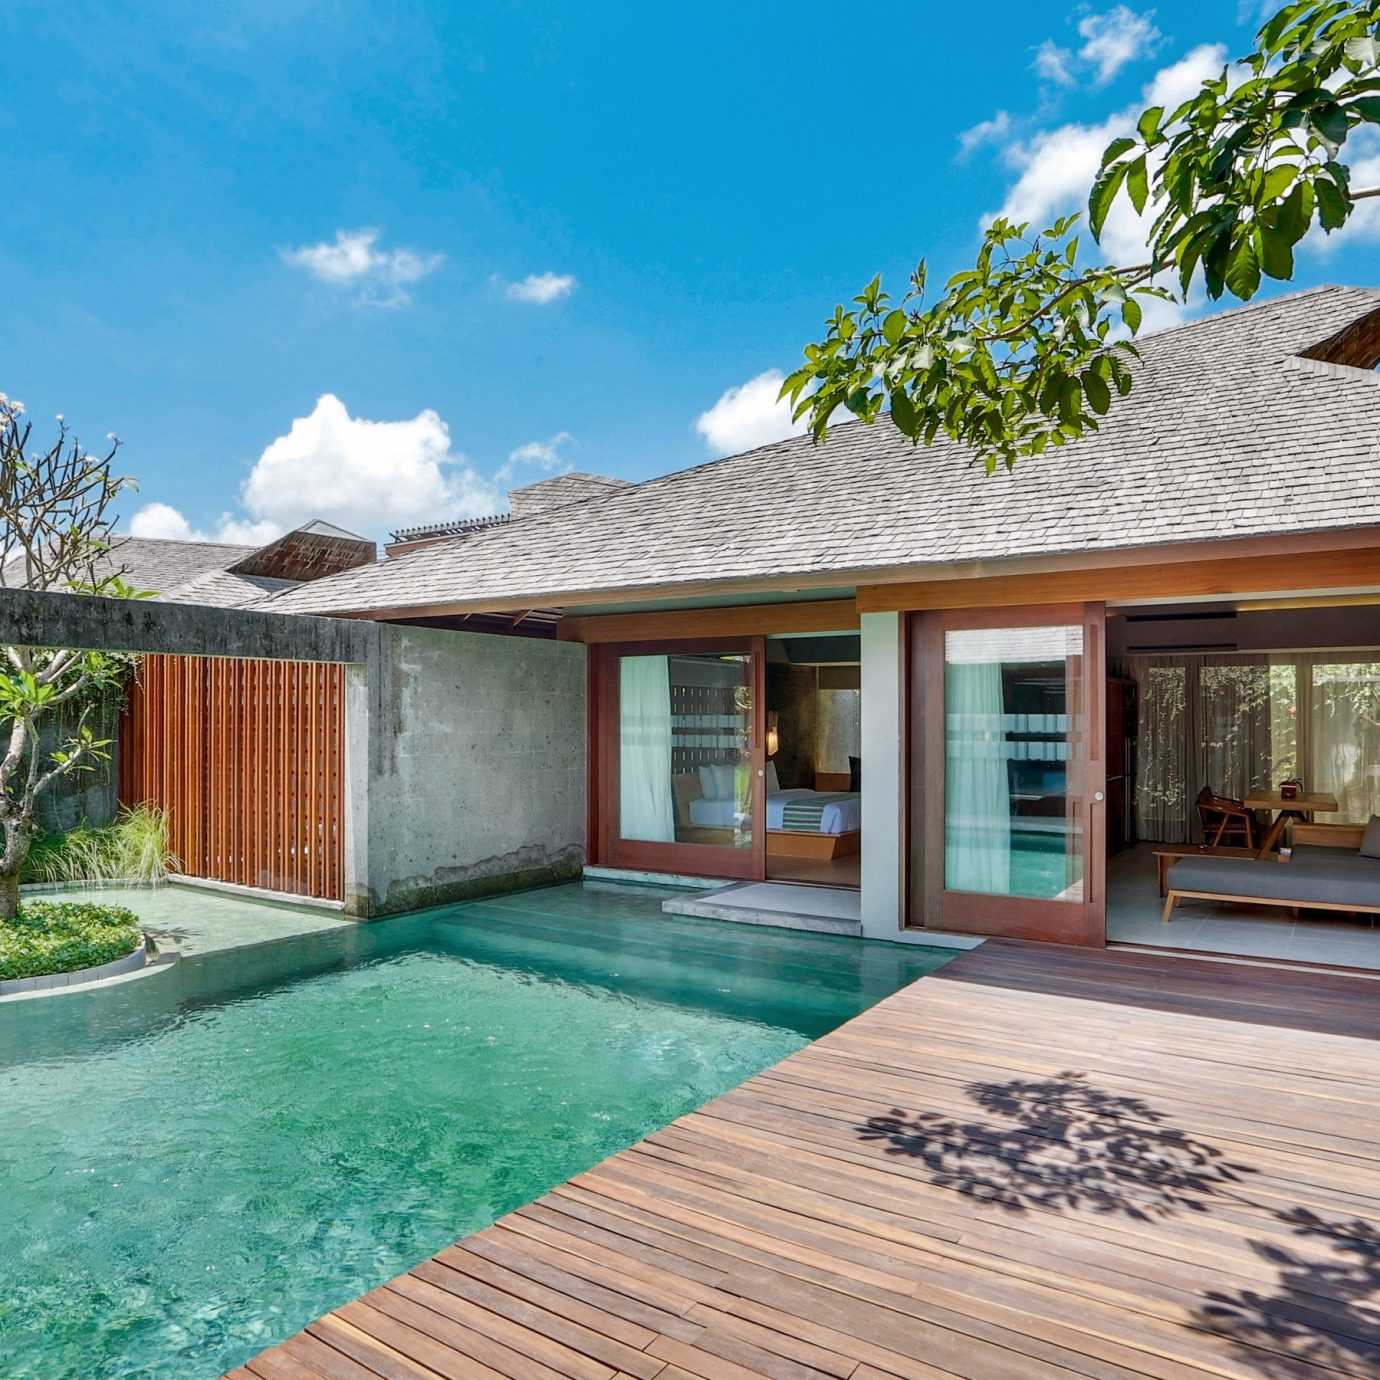 Lounge Pool Tropical sky property swimming pool building house home Villa Resort backyard cottage condominium mansion stone